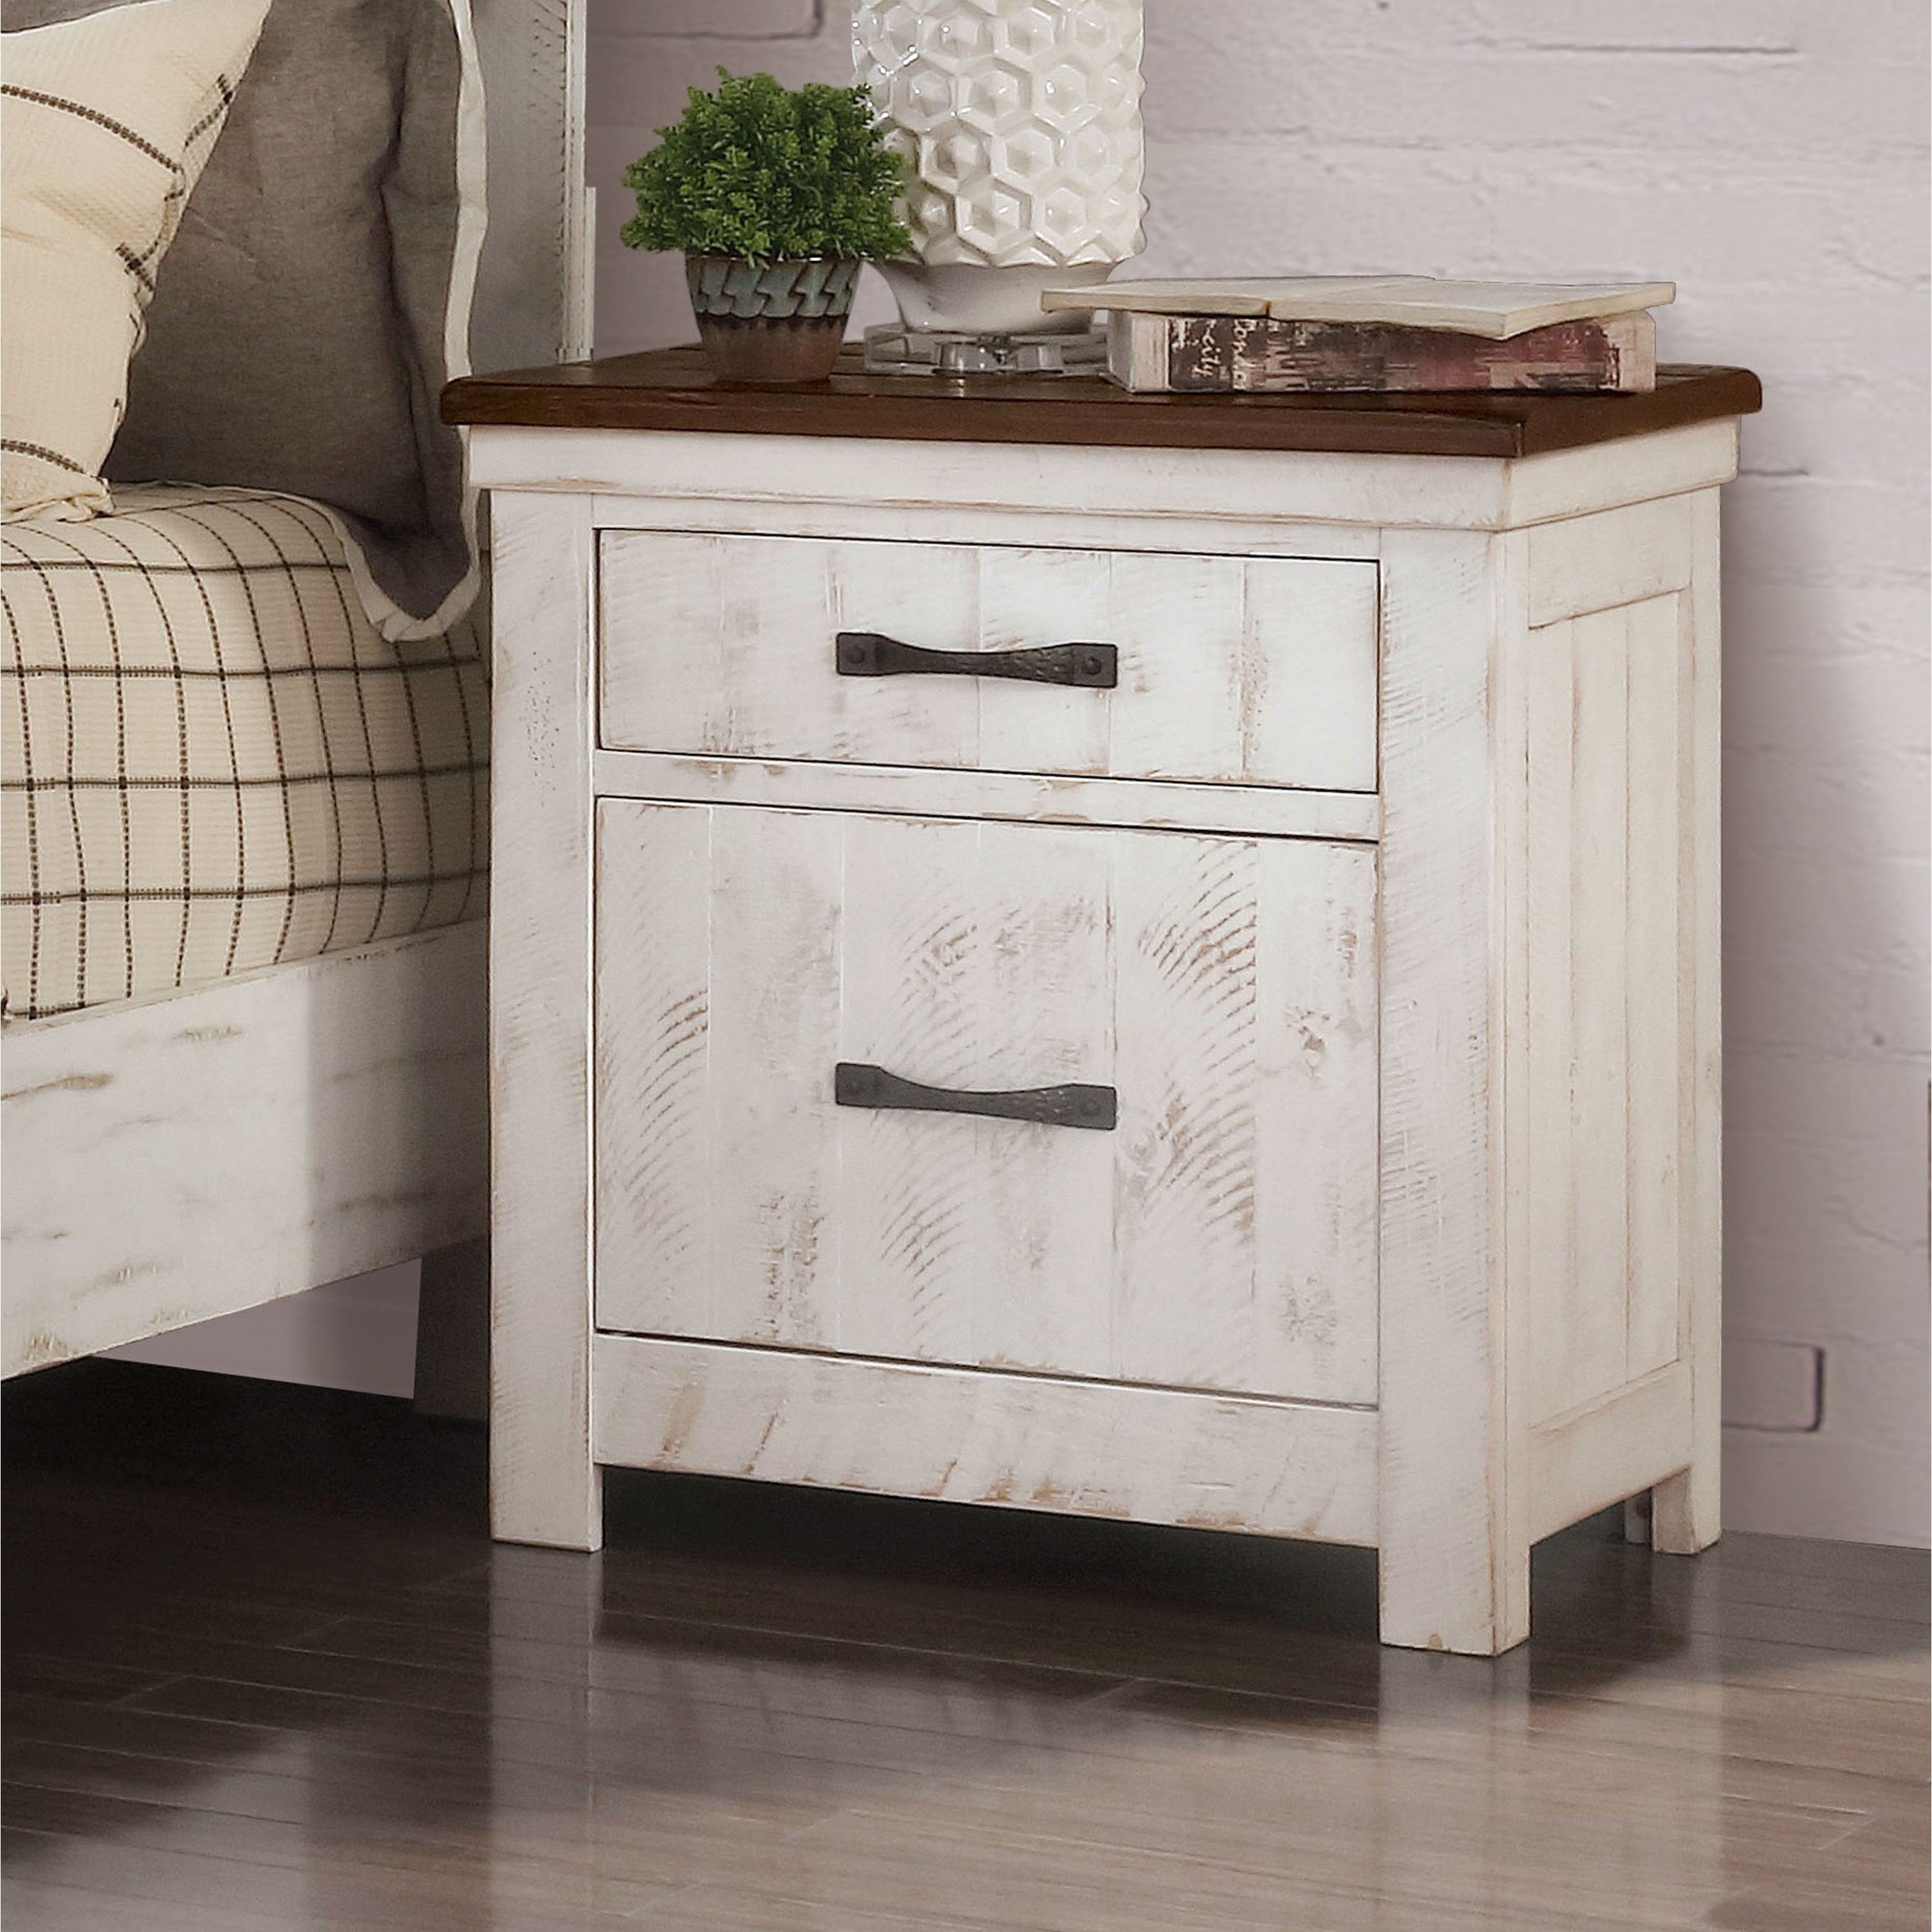 Furniture Of America Ynez Transitional Distressed White Nightstand Overstock 30978000